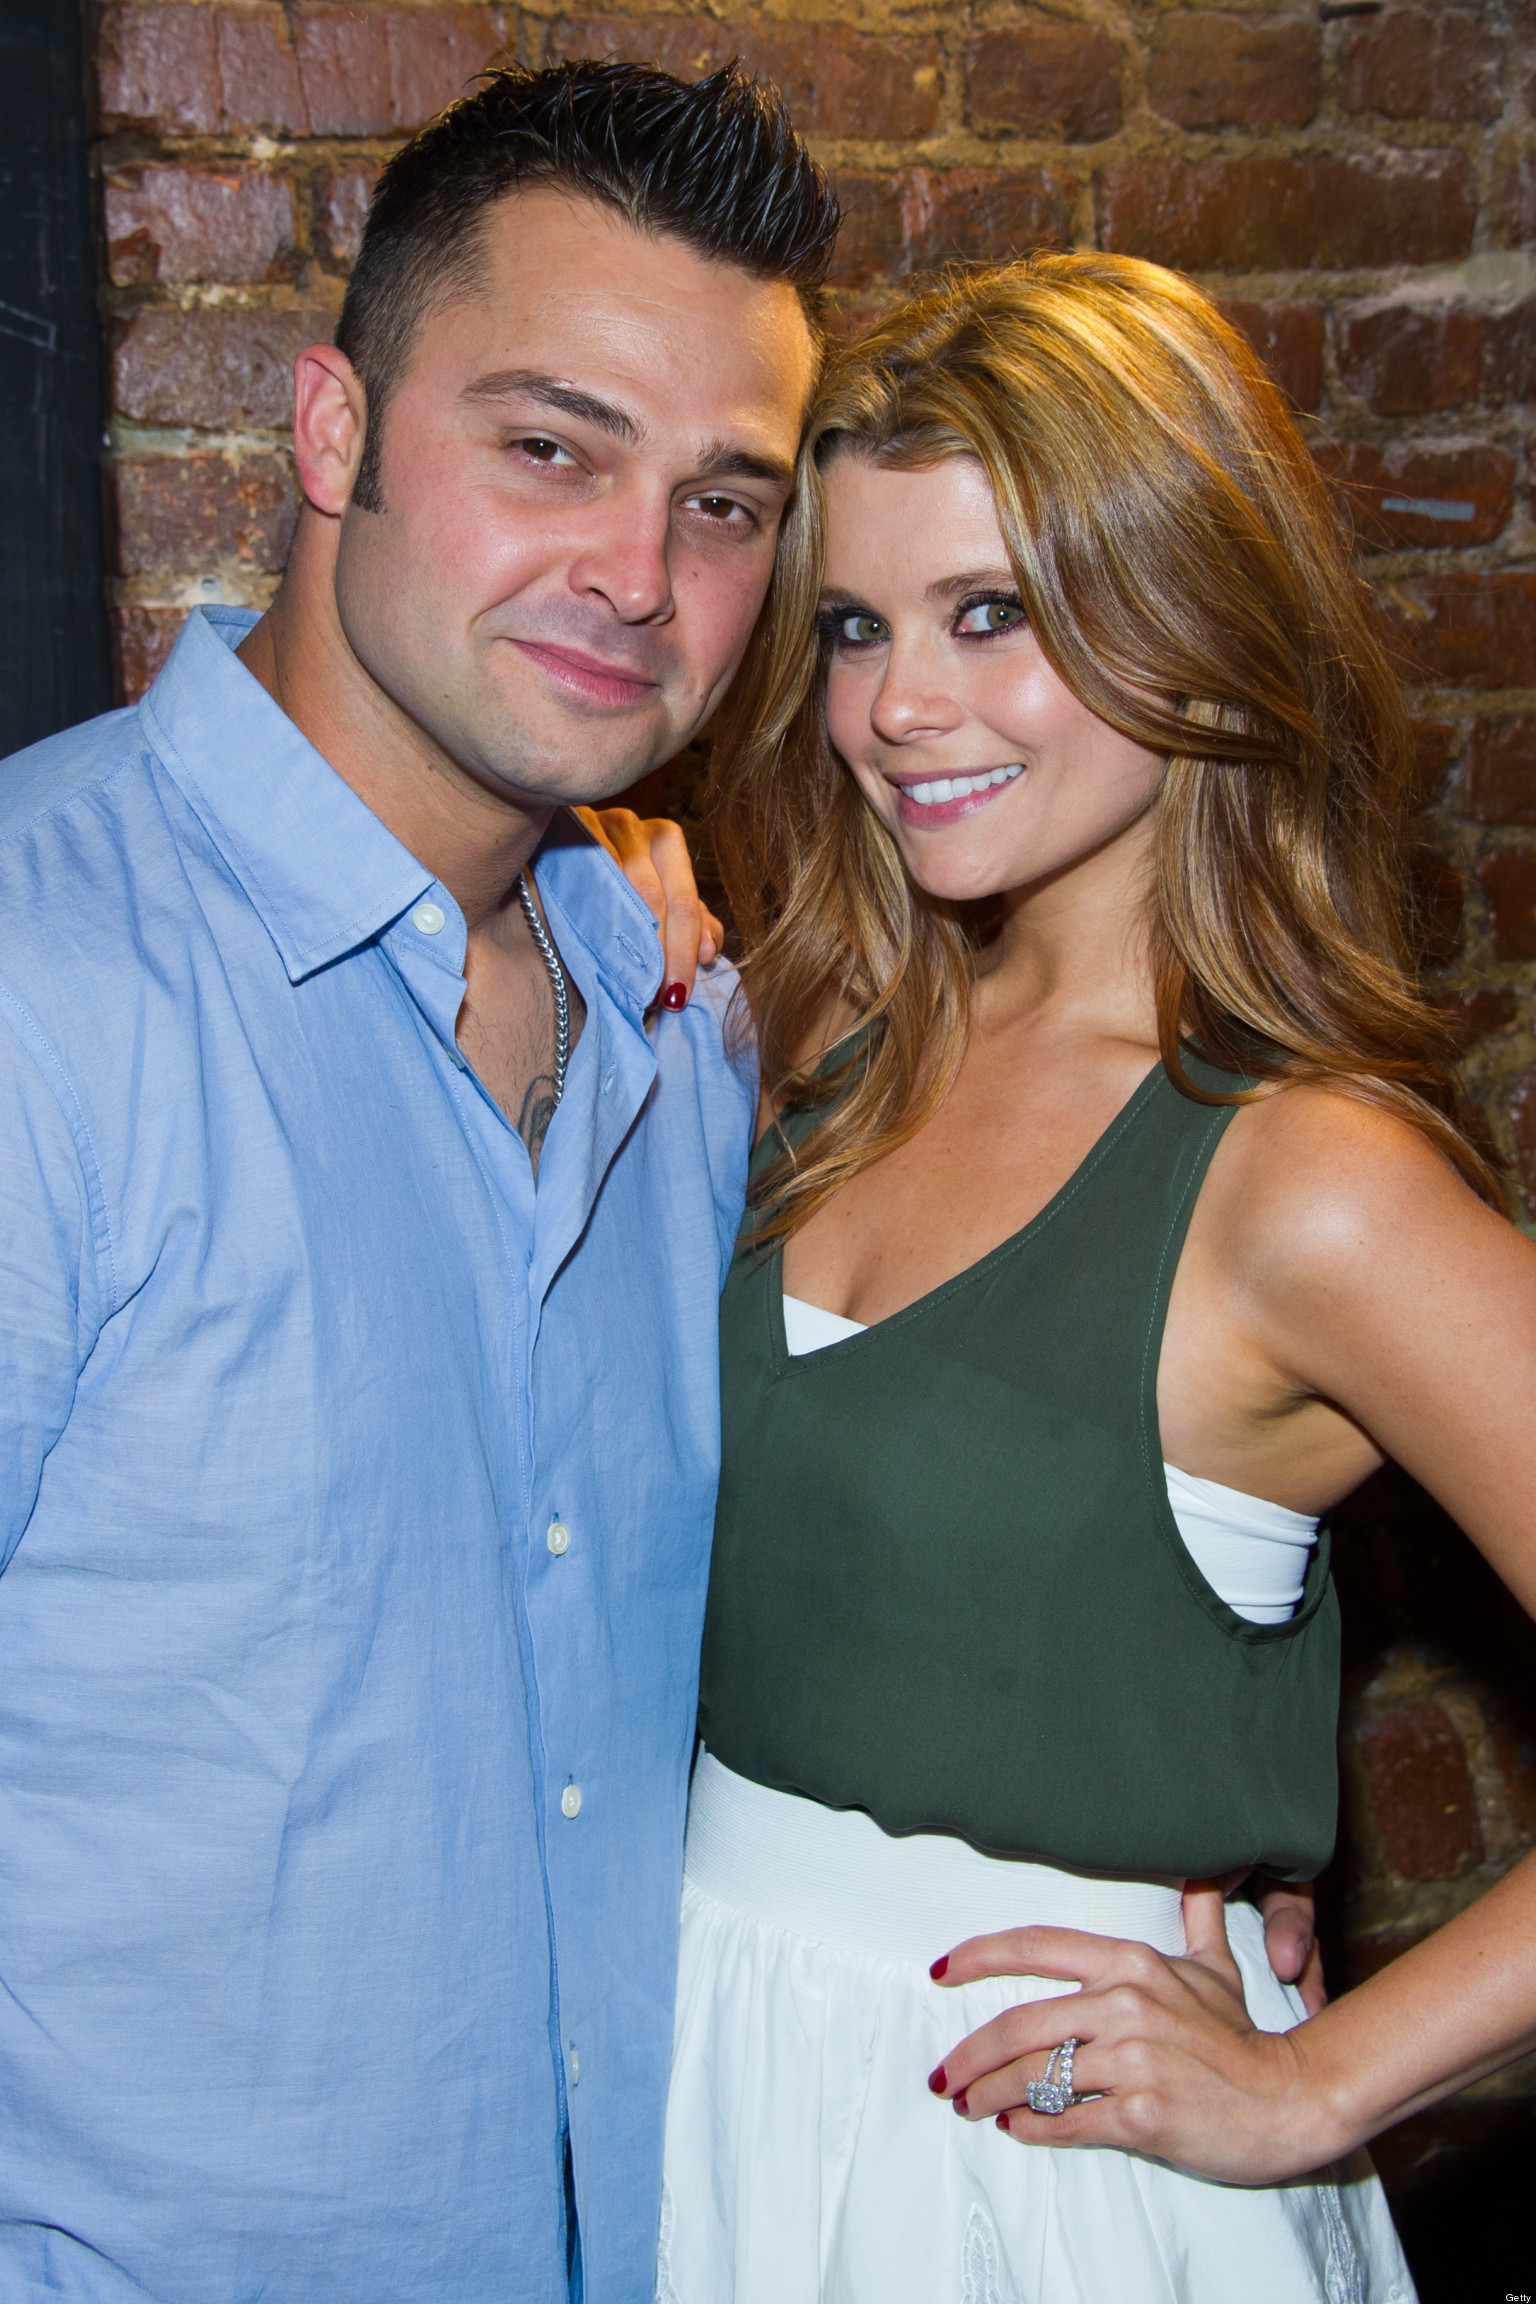 swisher dating Joanna garcia and nick swisher are expecting their second child together, they announced on tuesday  still going strong: joanna and nick started dating in august 2009, and got engaged the .